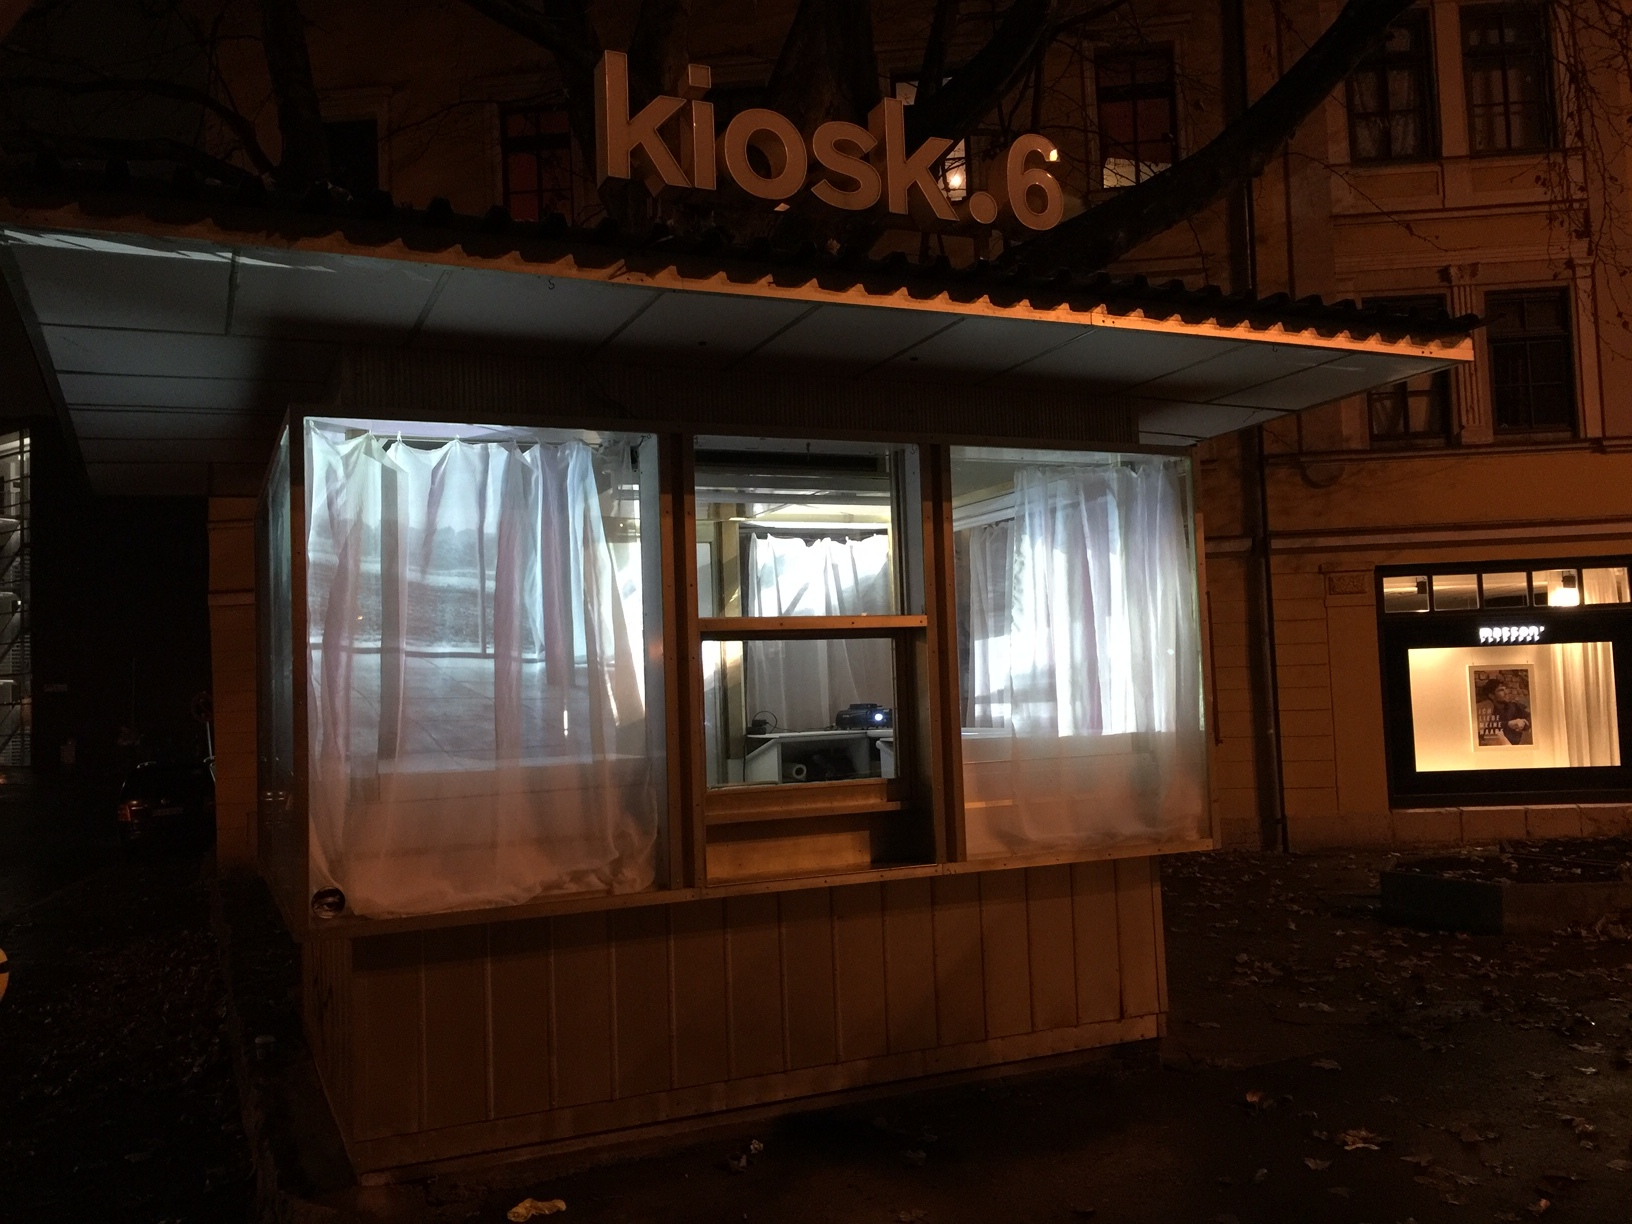 Outside look of kiosk.6 while presenting the work by Astrid Busch